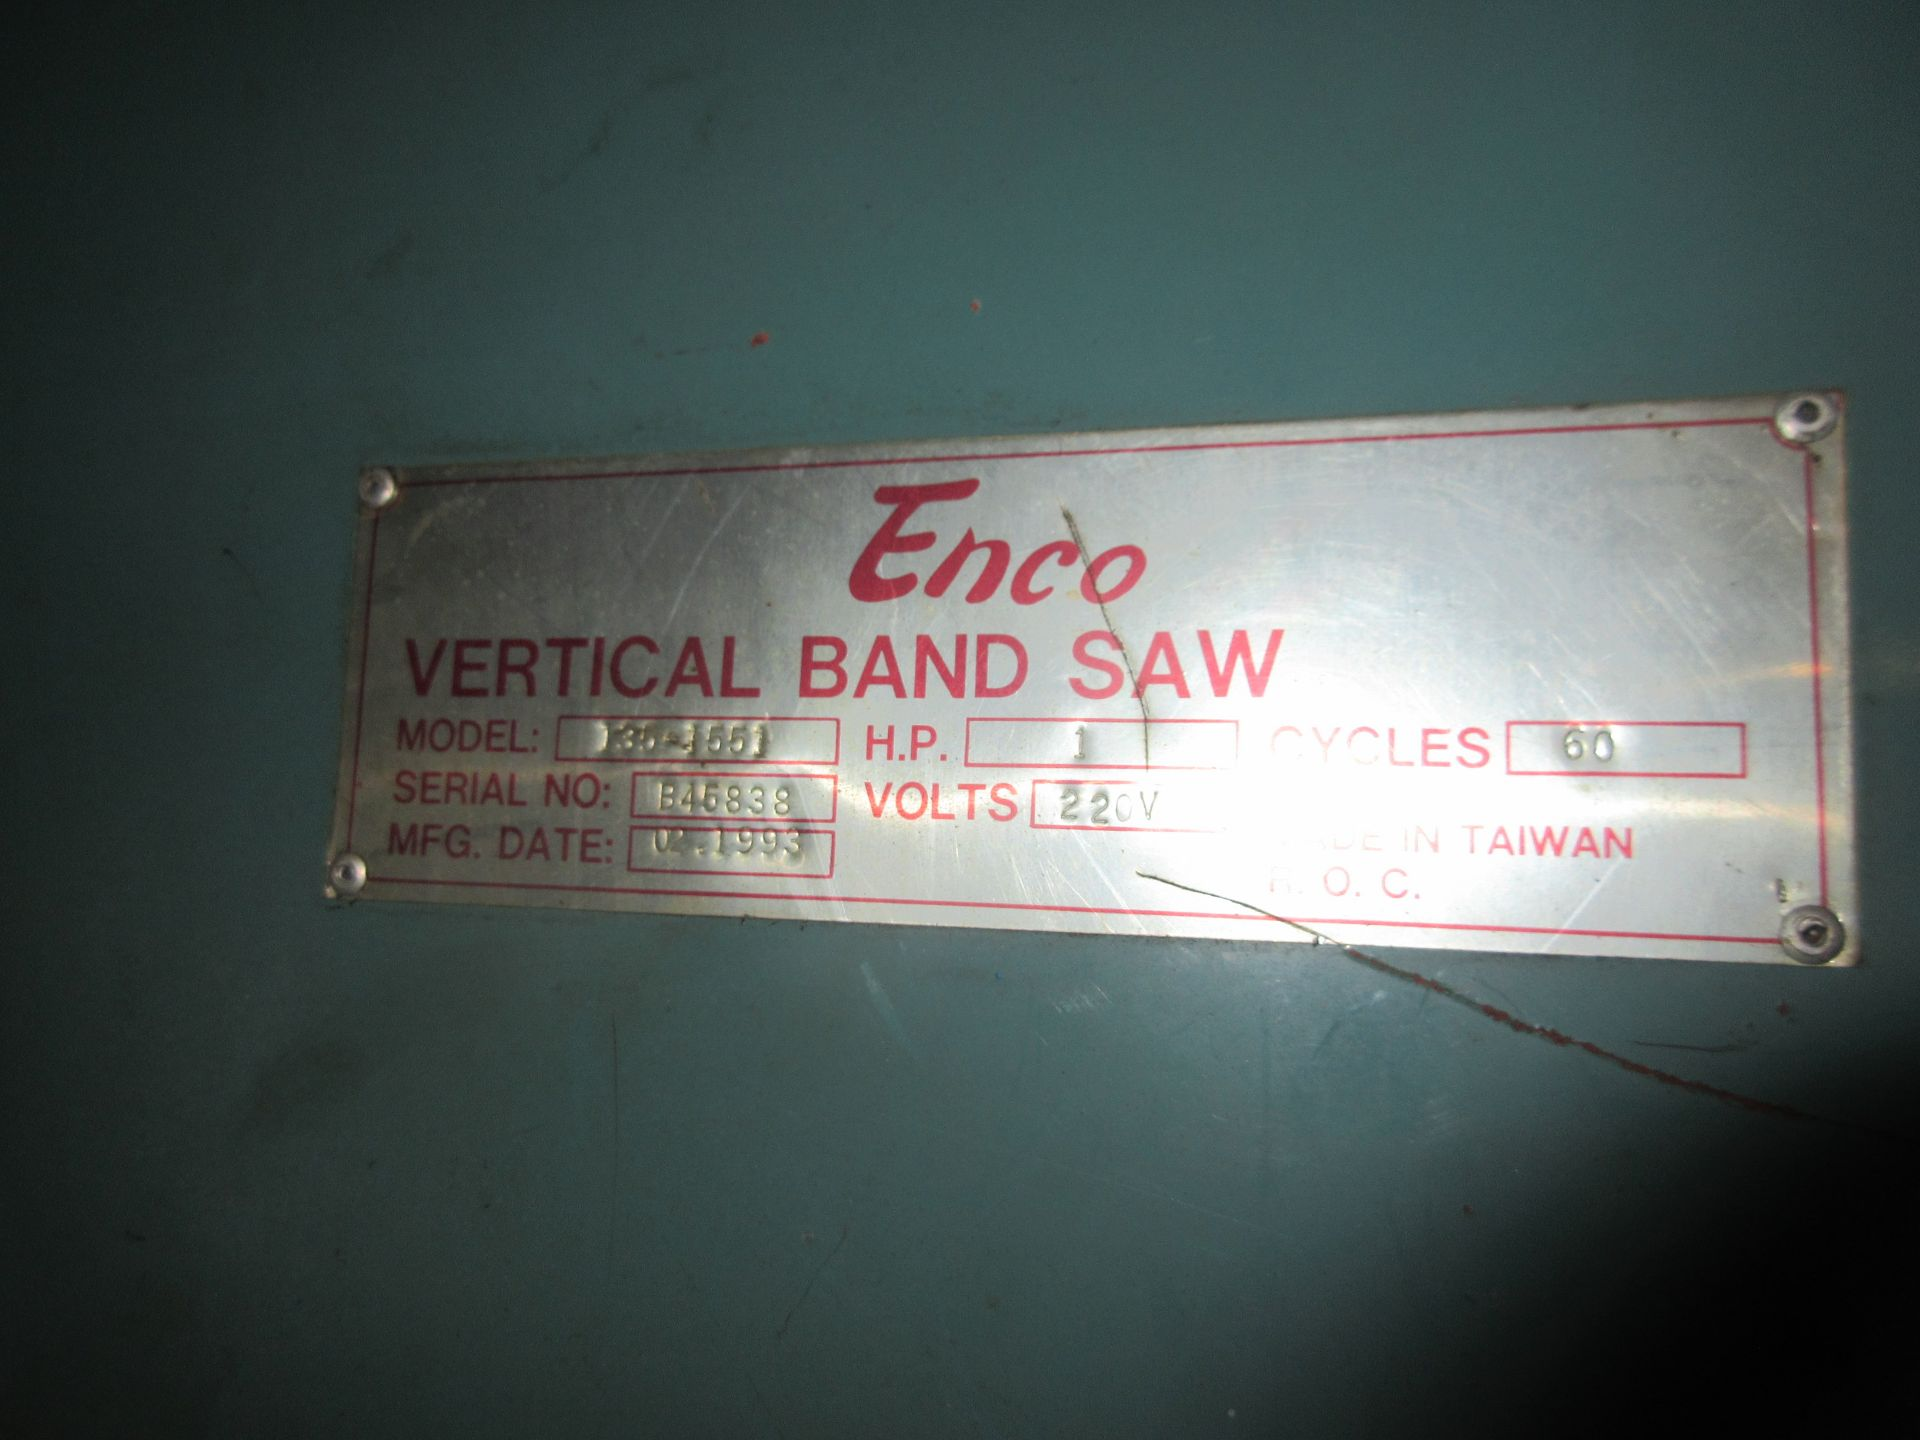 (1) Enco 135-1551 Vert. Band Saw, S/N B45838, (1) H.P., Blade Weld Attachment - Image 2 of 3